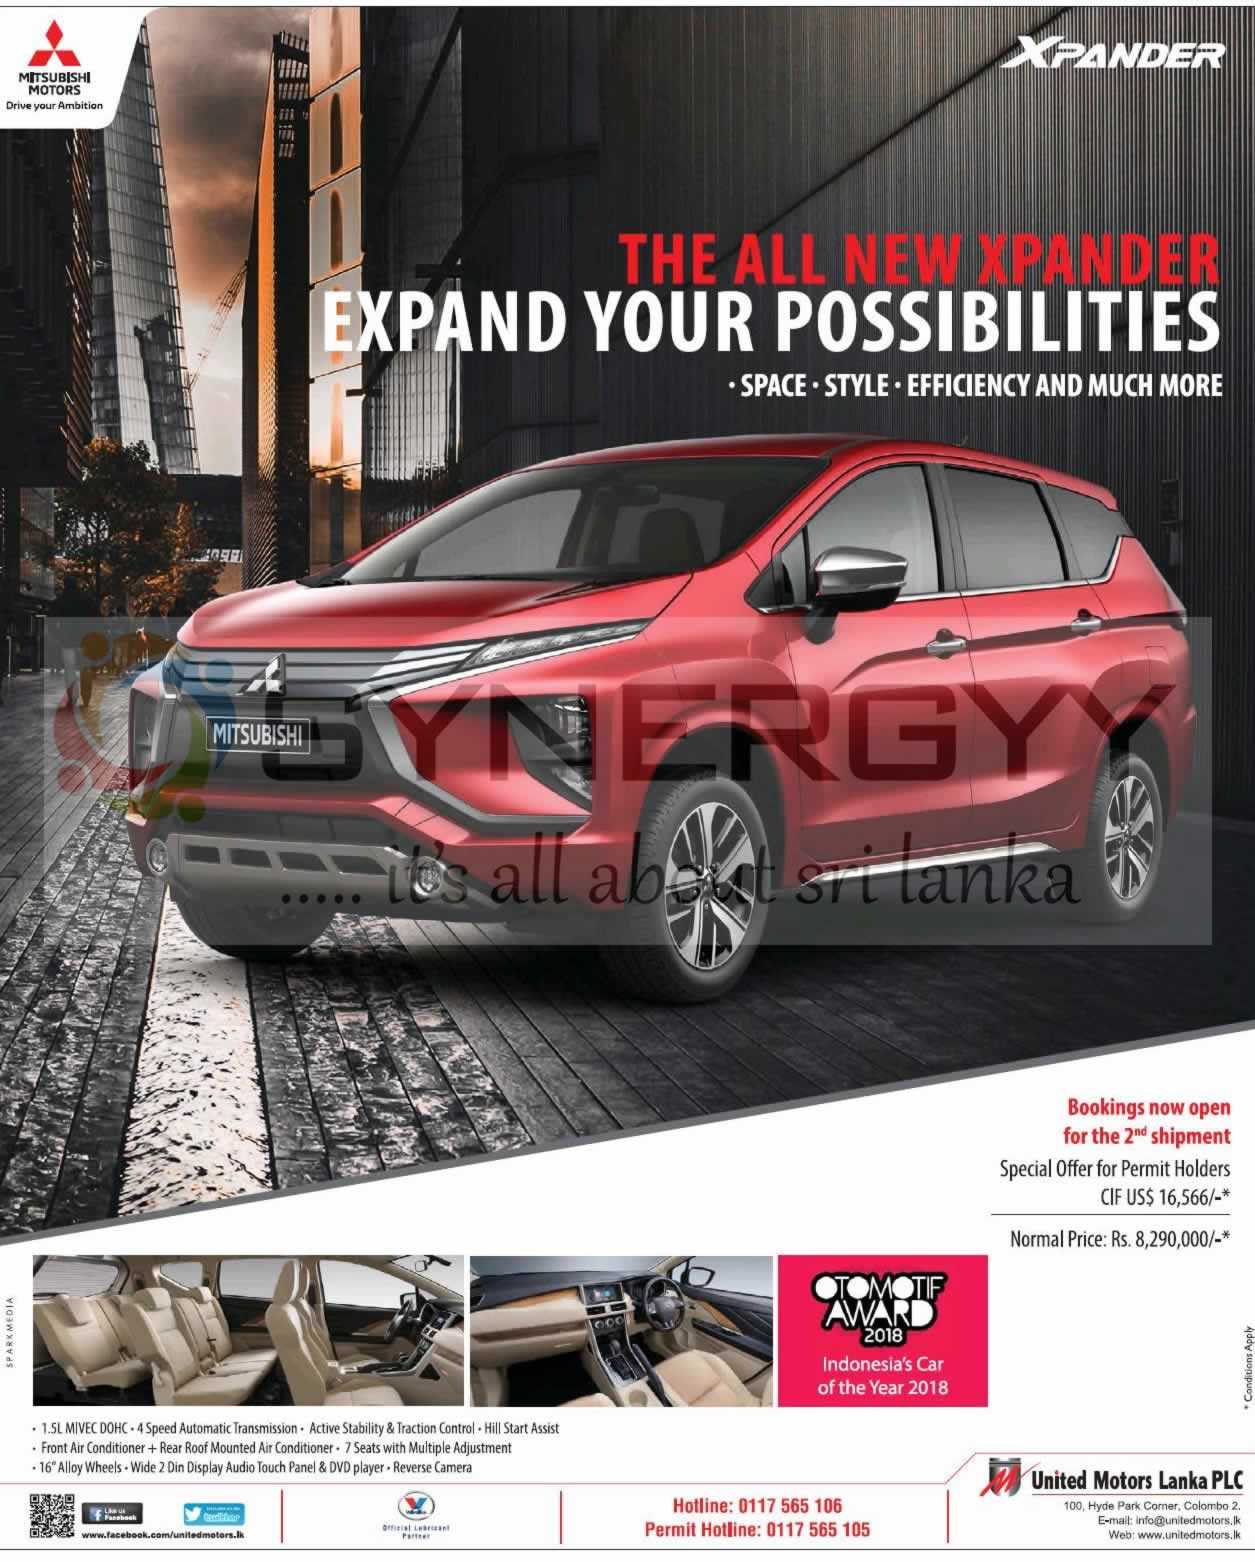 Mitsubishi Xpander 2018 Now Available In Sri Lanka For Usd 16 566